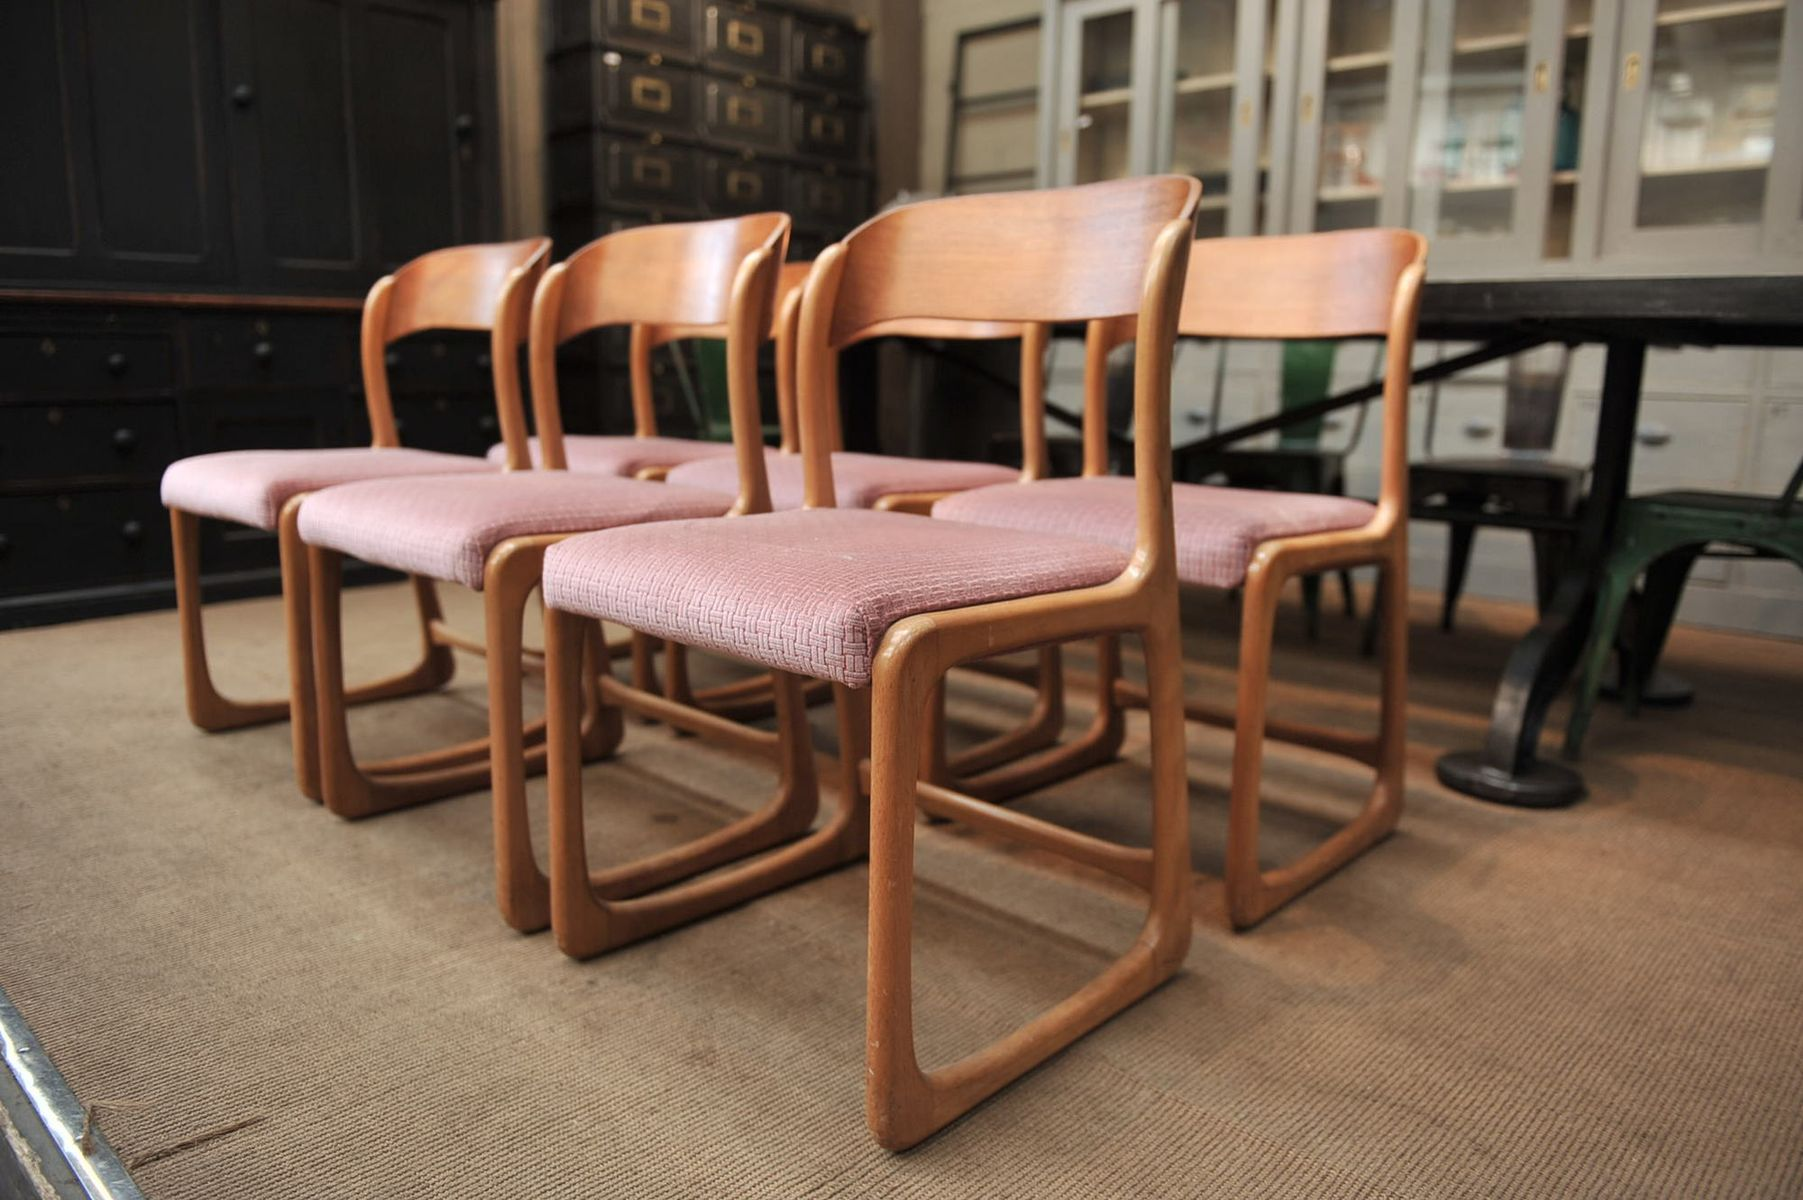 Vintage Wooden Chairs From Baumann 1960s Set Of 6 For Sale At Pamono